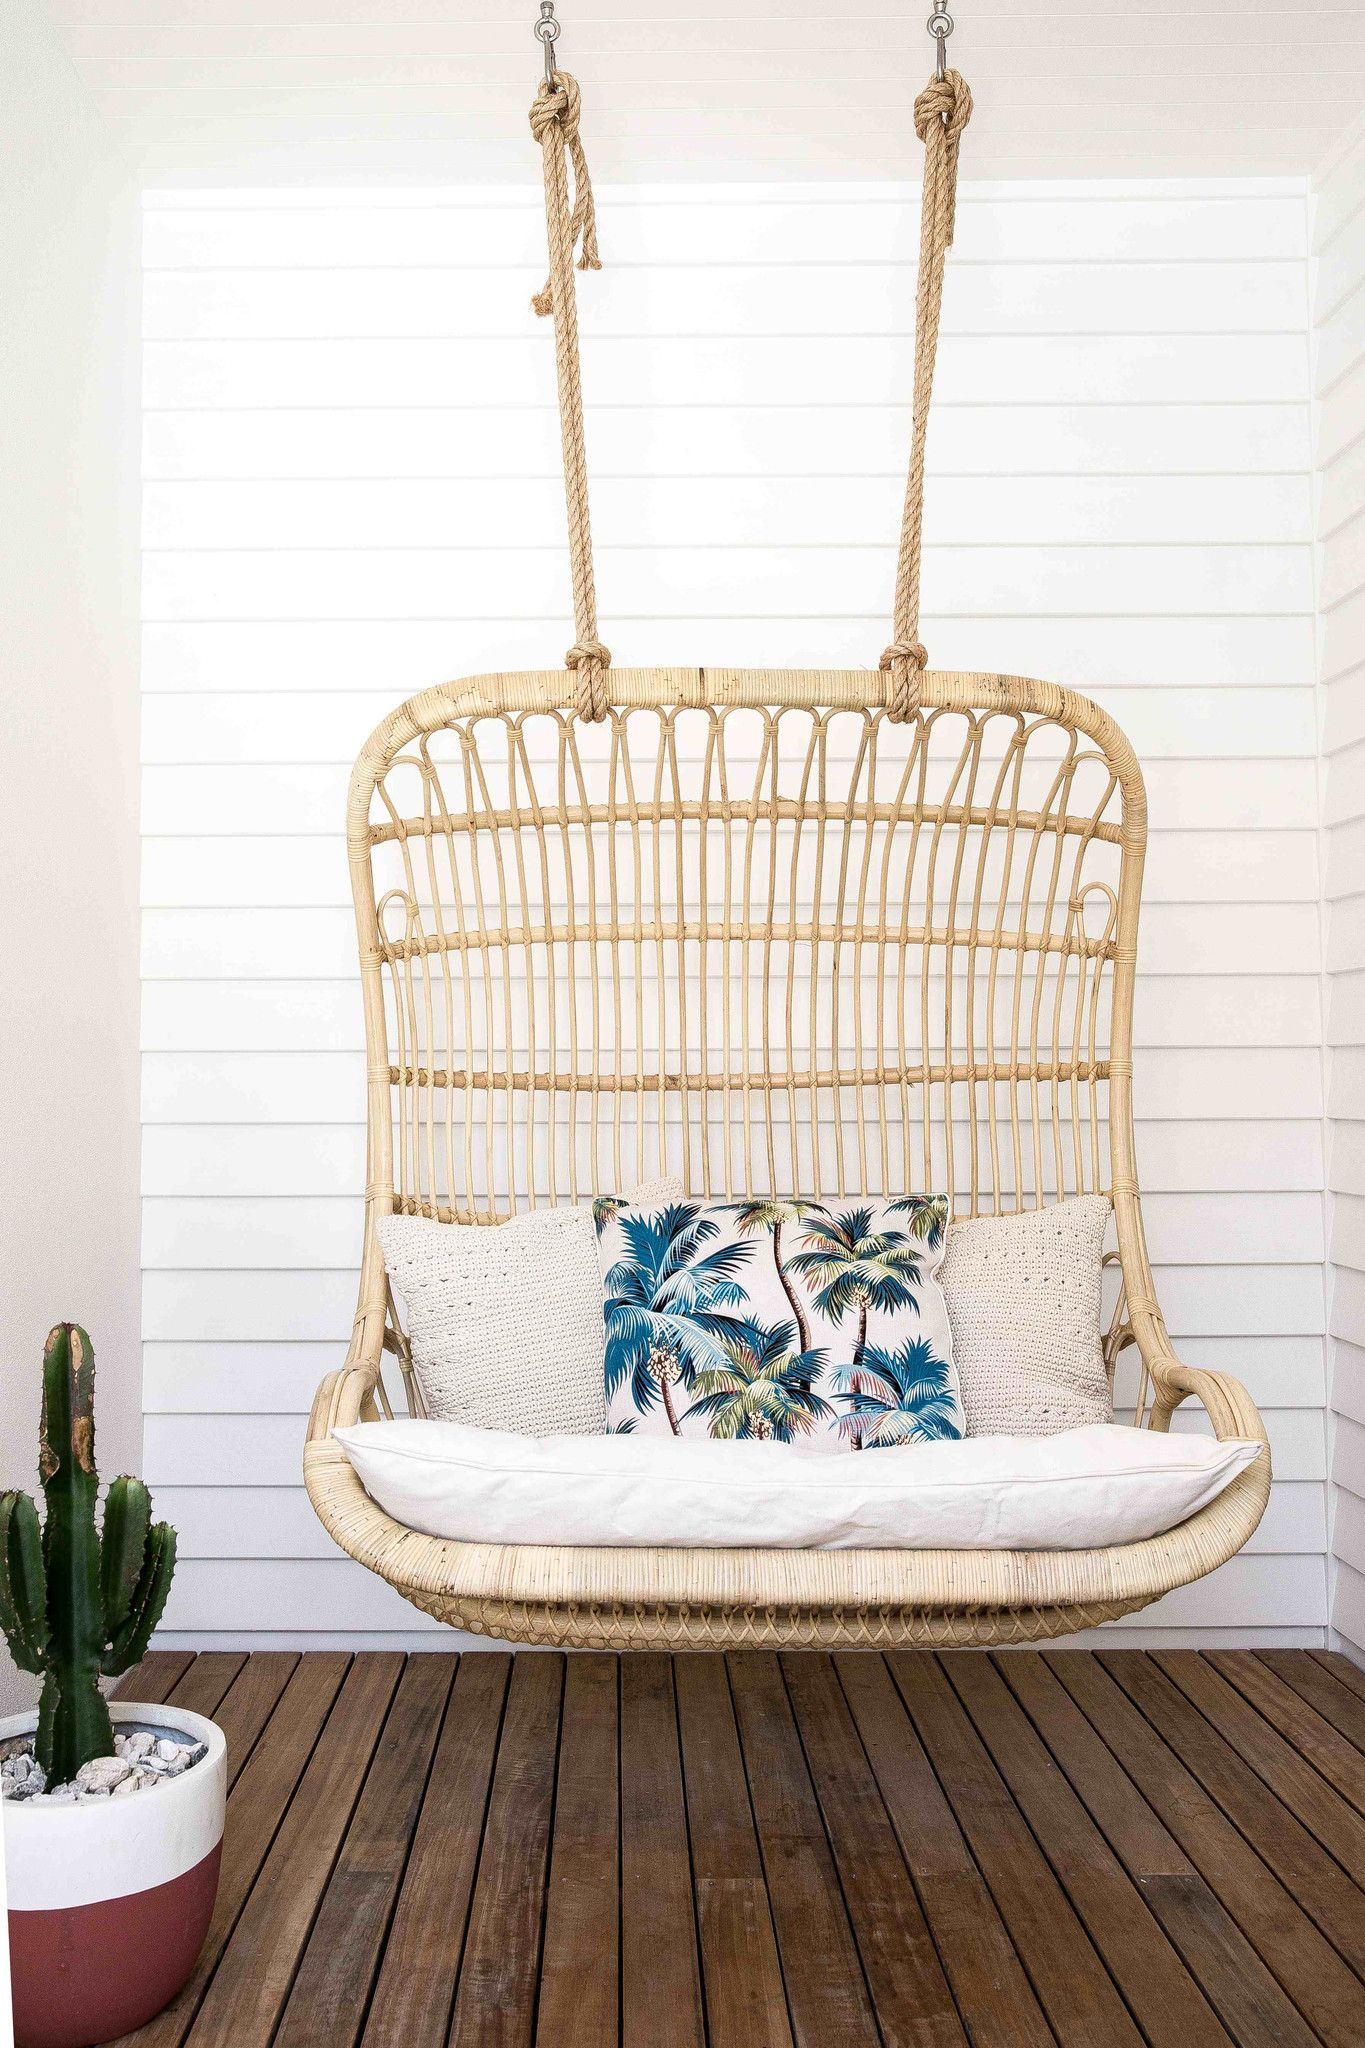 70 s Love Seat avail 5 20 Jan from Byron Bay Hanging Chairs